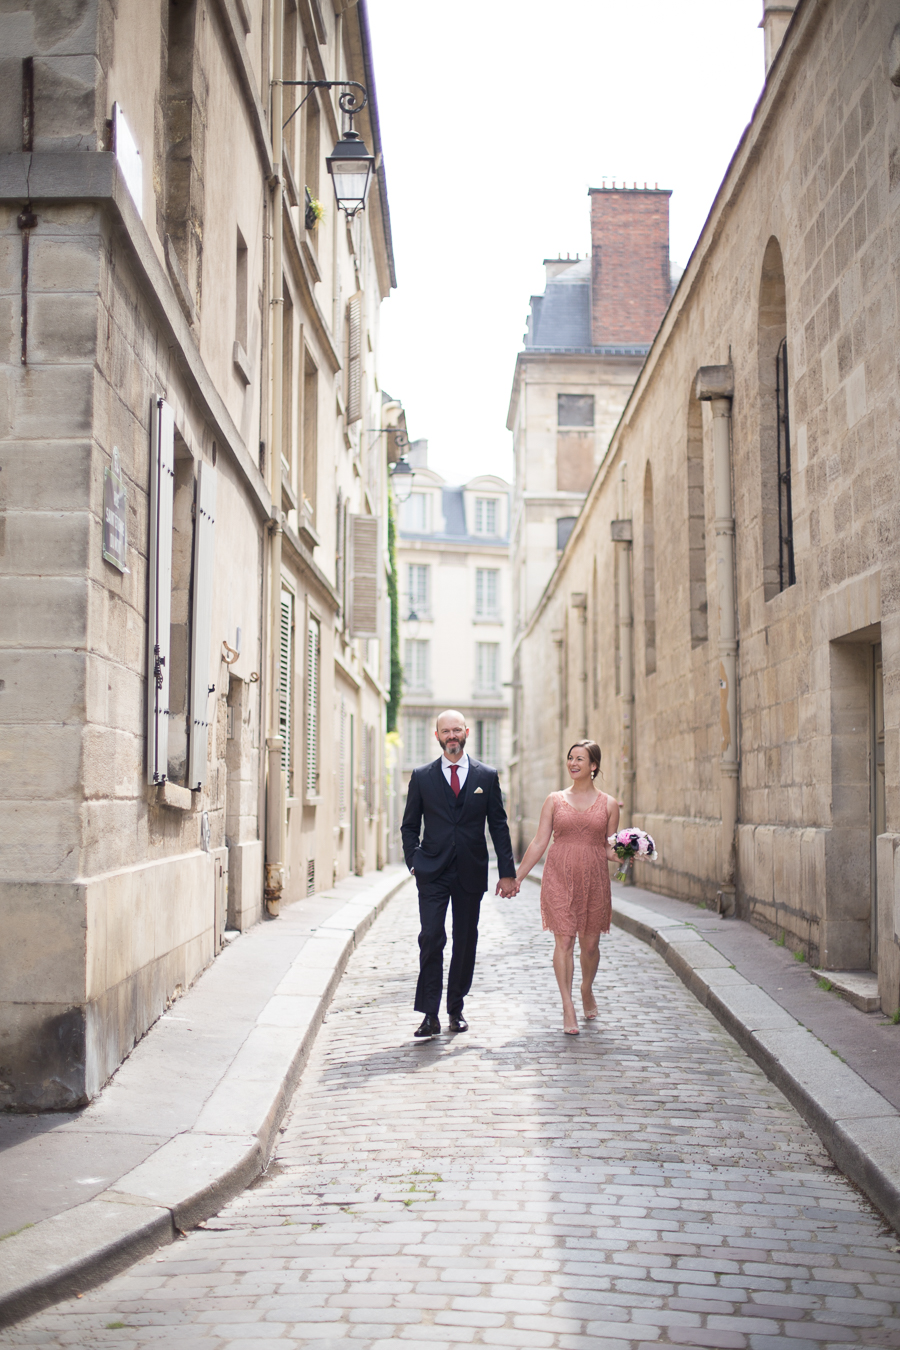 Paris, France Elopement Wedding Photographer_031.jpg